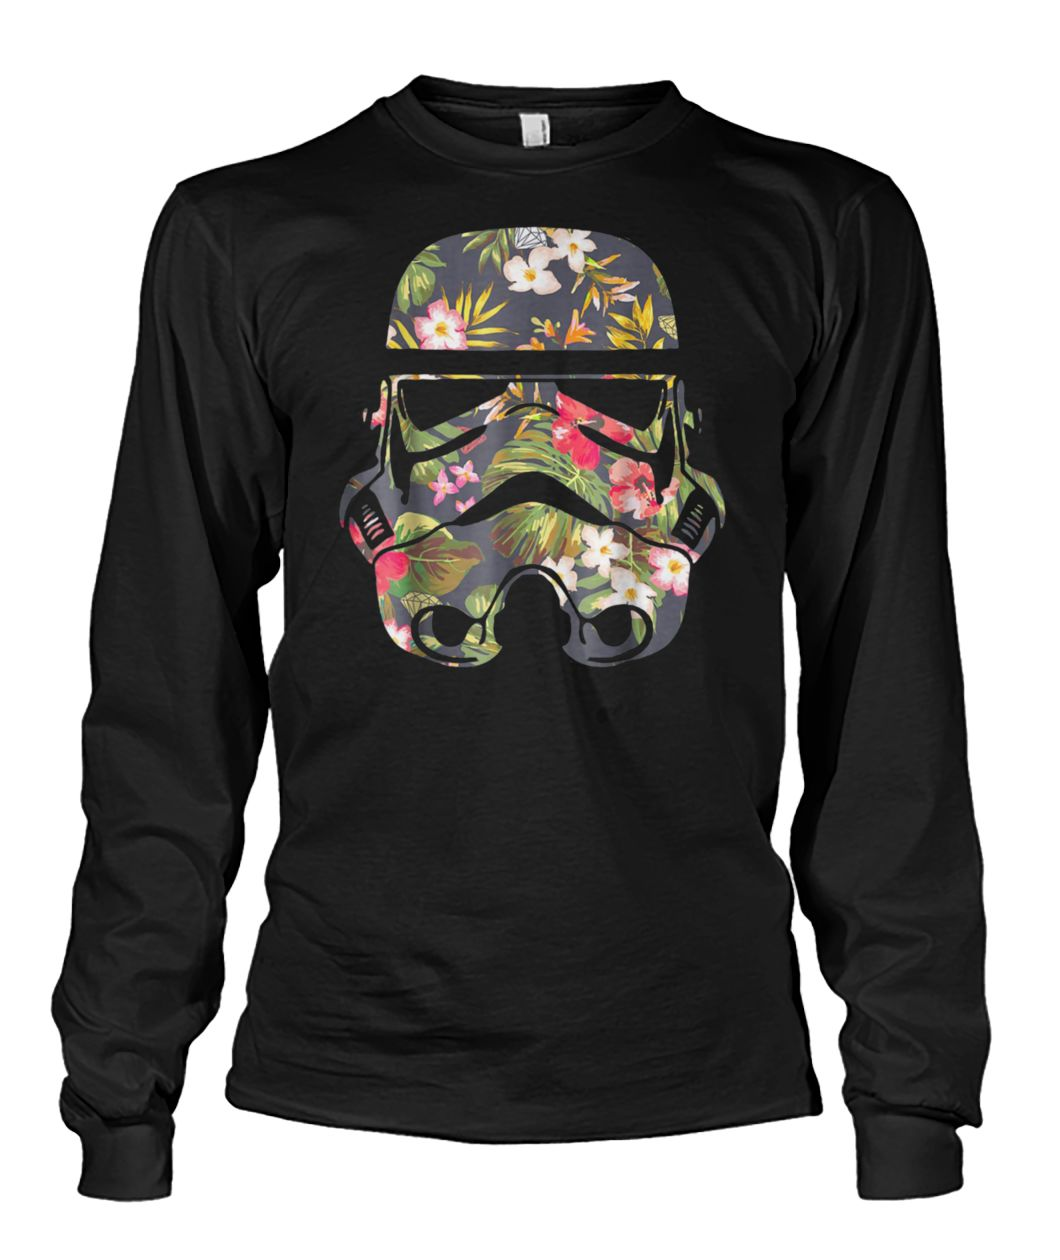 Star wars tropical stormtrooper floral print graphic unisex long sleeve